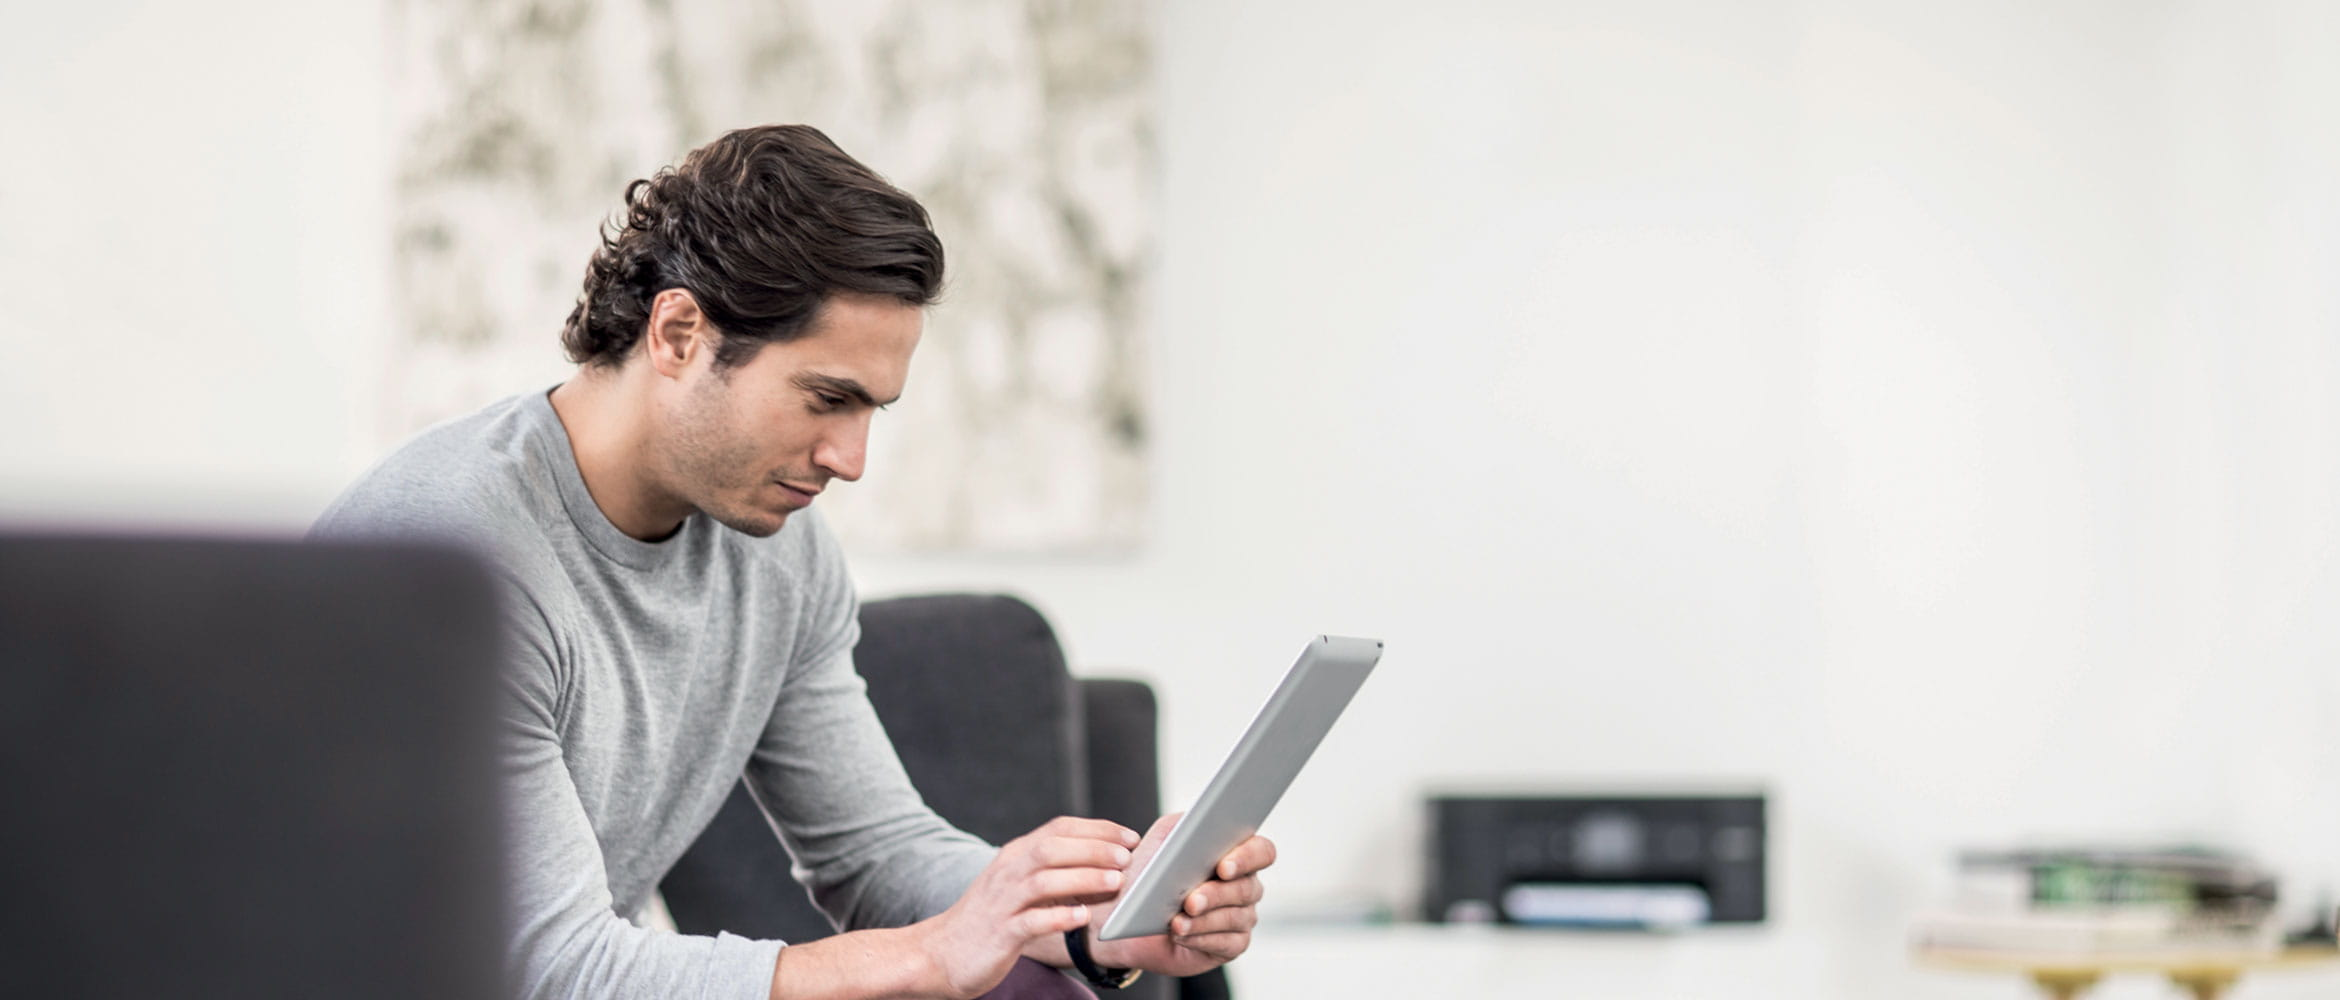 Man looking at tablet sat on sofa in home, with Brother printer in the background